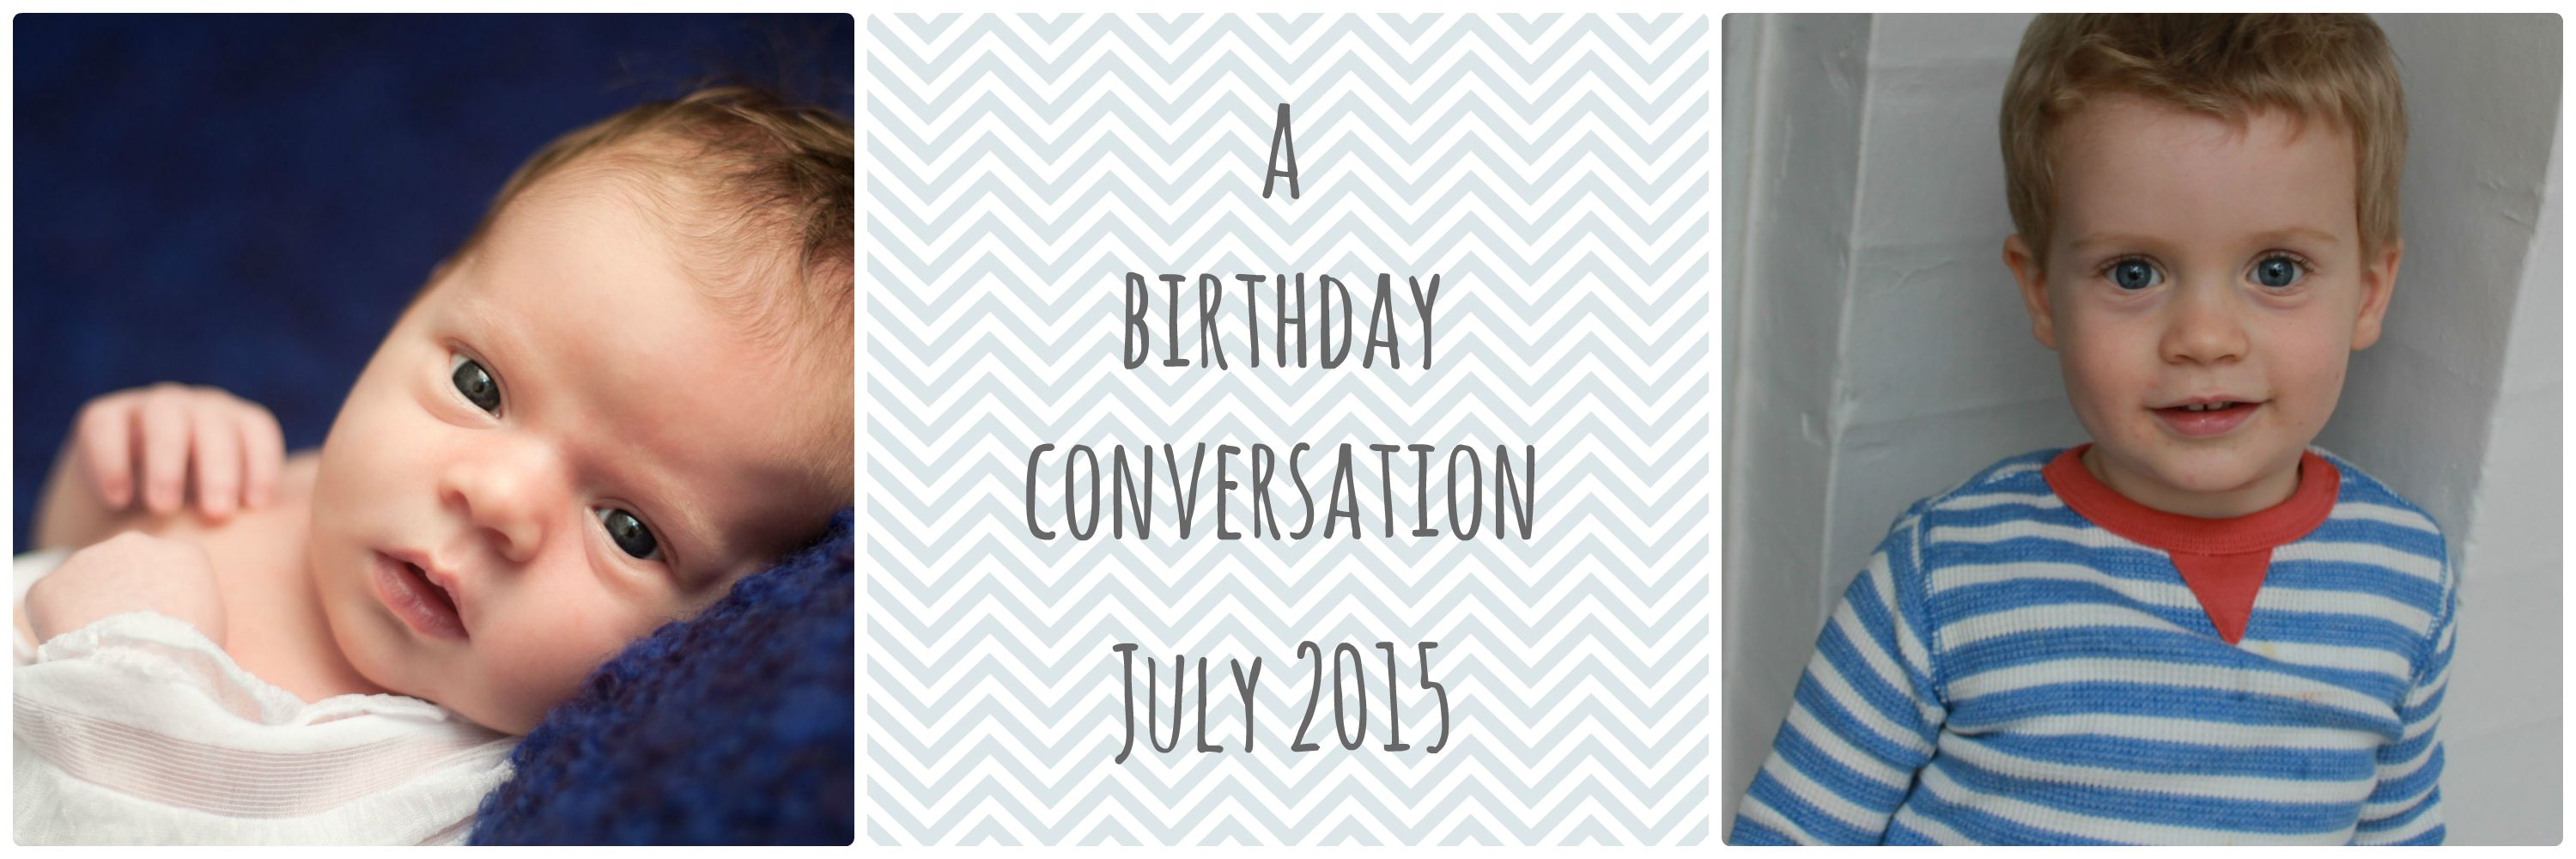 A birthday conversation - interview questions to ask each birthday